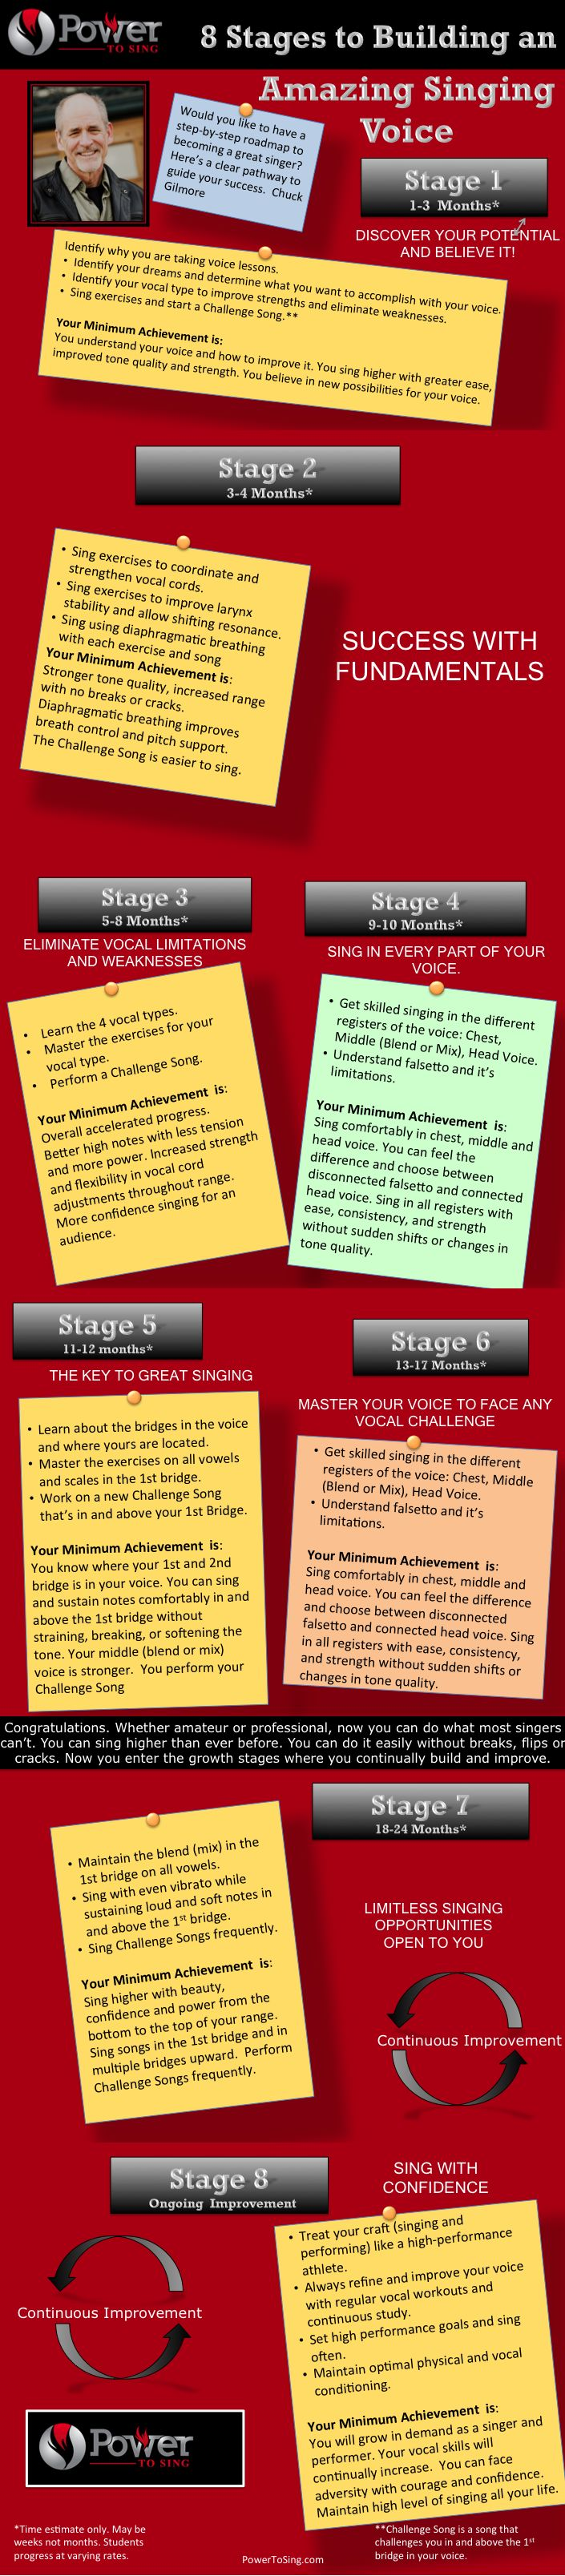 "Learn How to Sing Infographic: 8 Stages to Building an Amazing Singing Voice. Your Guide to Singing Success.   The ""Learn How to Sing Infographic"" is designed to help answer these and many other questions: 1. How long will it take to learn how to sing? 2. What's the problem with my voice? 3. How do..."